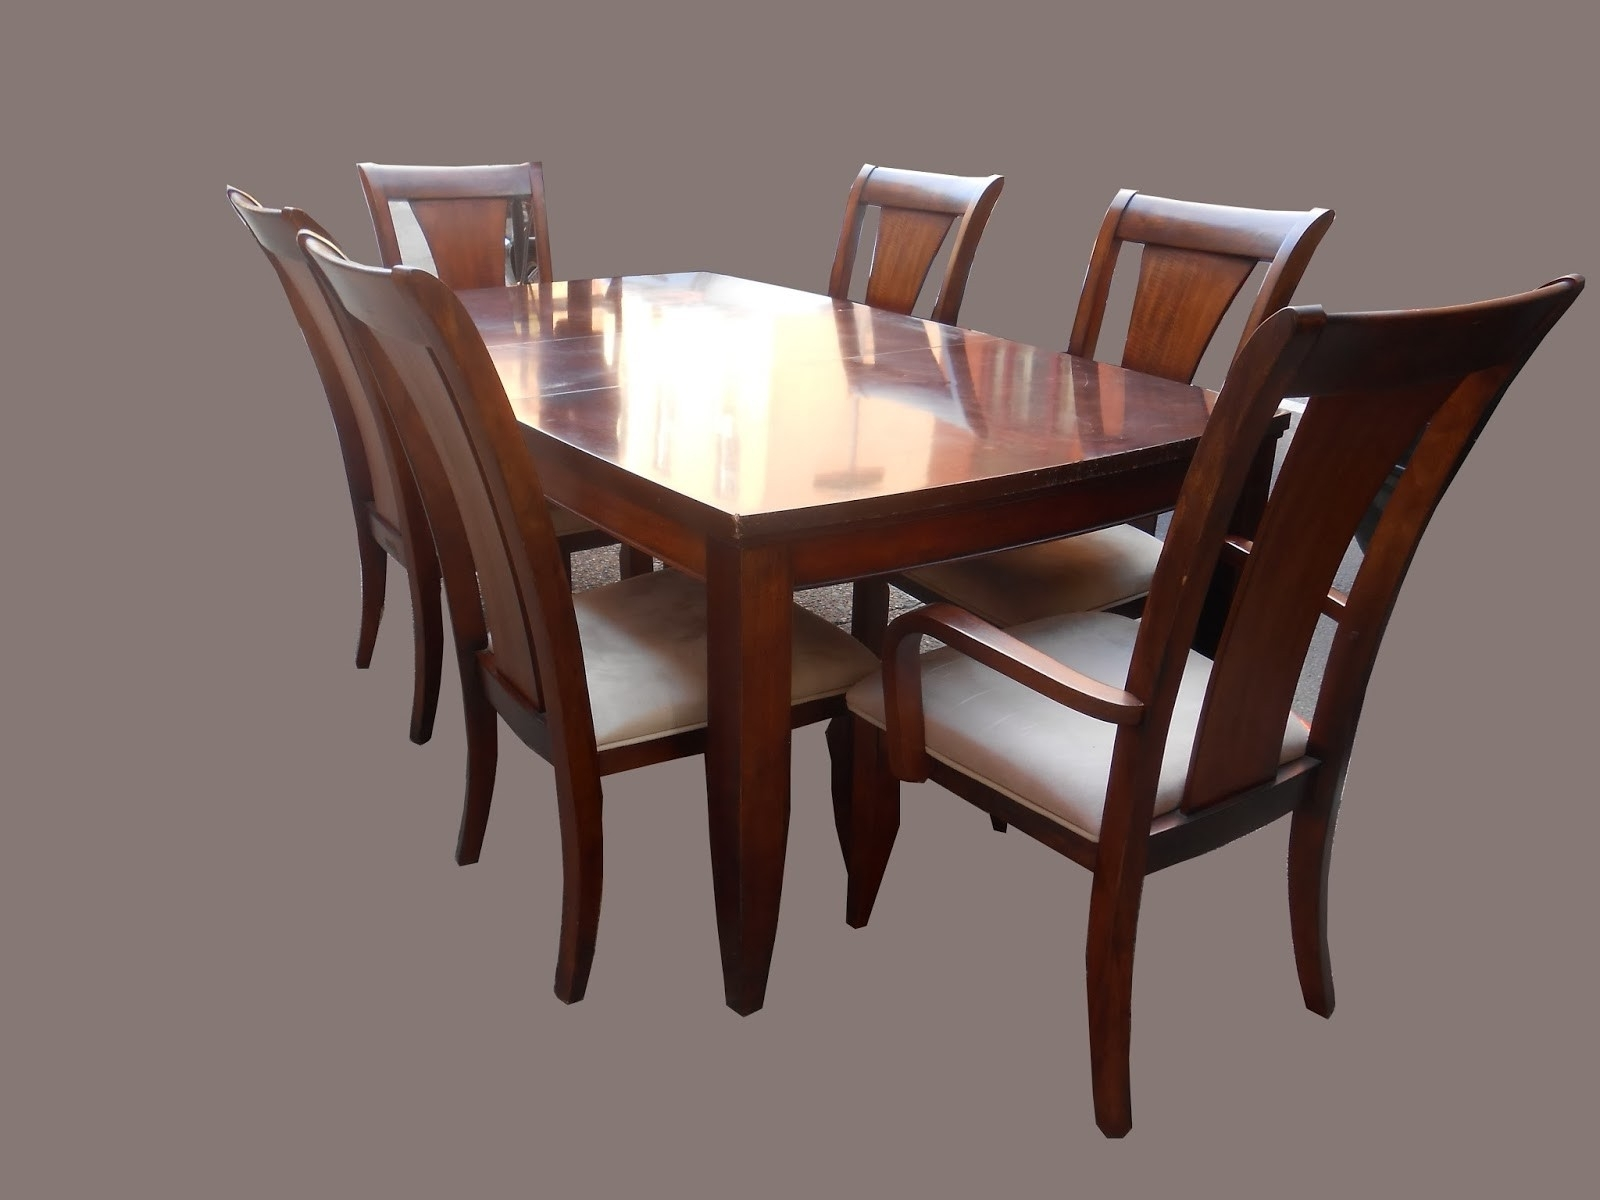 Dining Table Sets With 6 Chairs Awesome Uhuru Furniture Inside Most Current Mahogany Dining Tables Sets (Gallery 25 of 25)